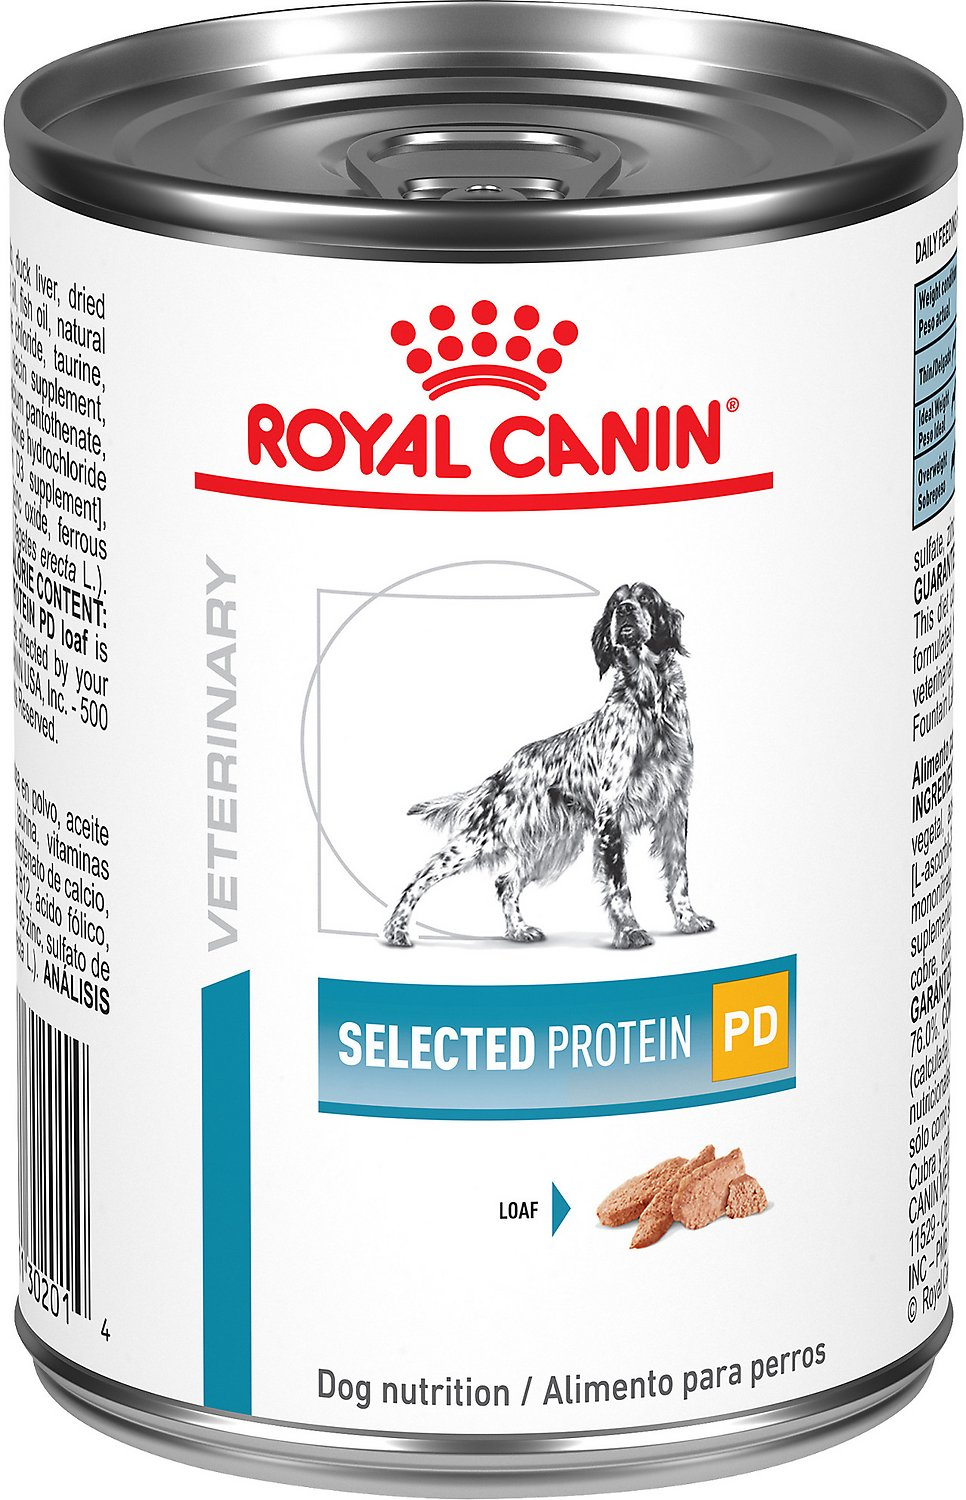 royal canin veterinary diet selected protein adult pd canned dog food 13 6 oz case of 24. Black Bedroom Furniture Sets. Home Design Ideas